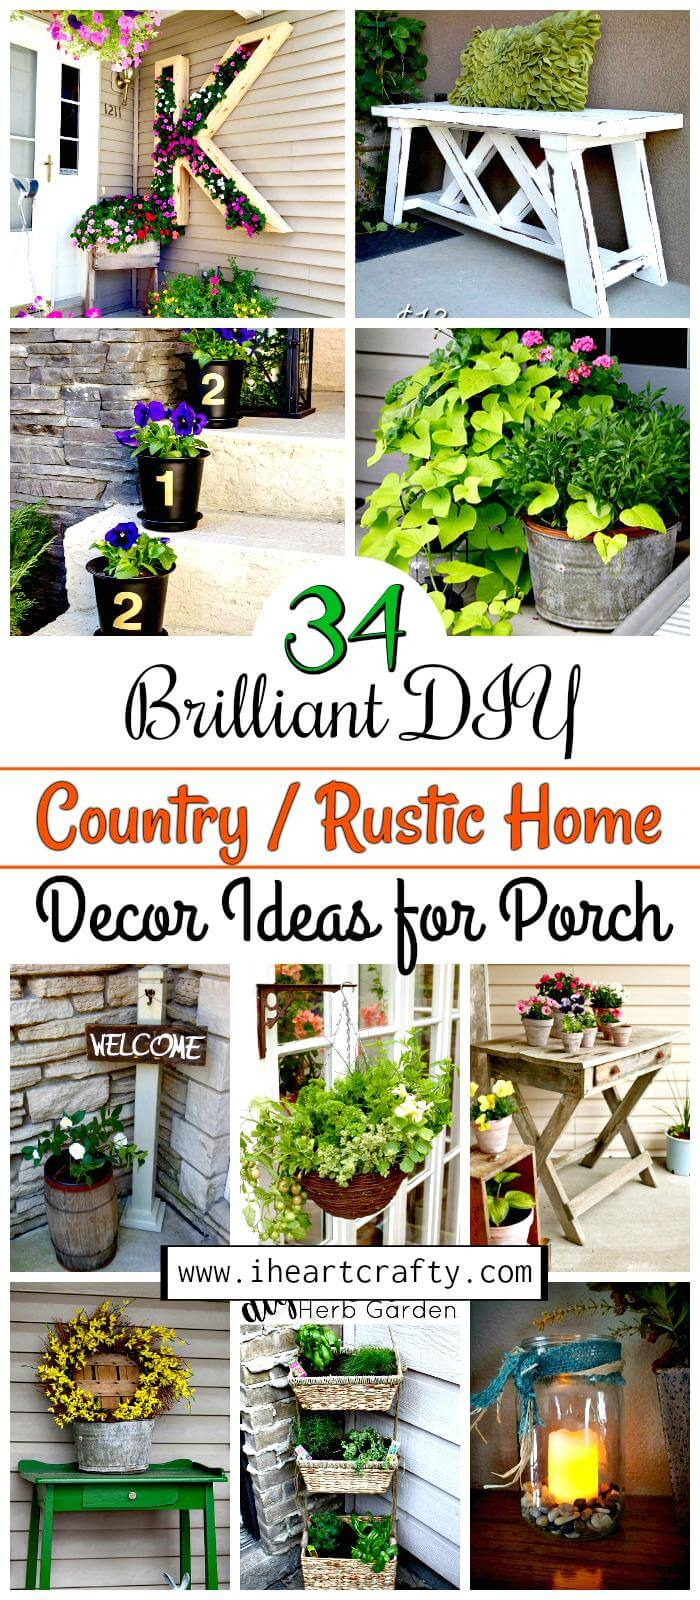 34 Brilliant Diy Country Rustic Home Decor Ideas For Porch